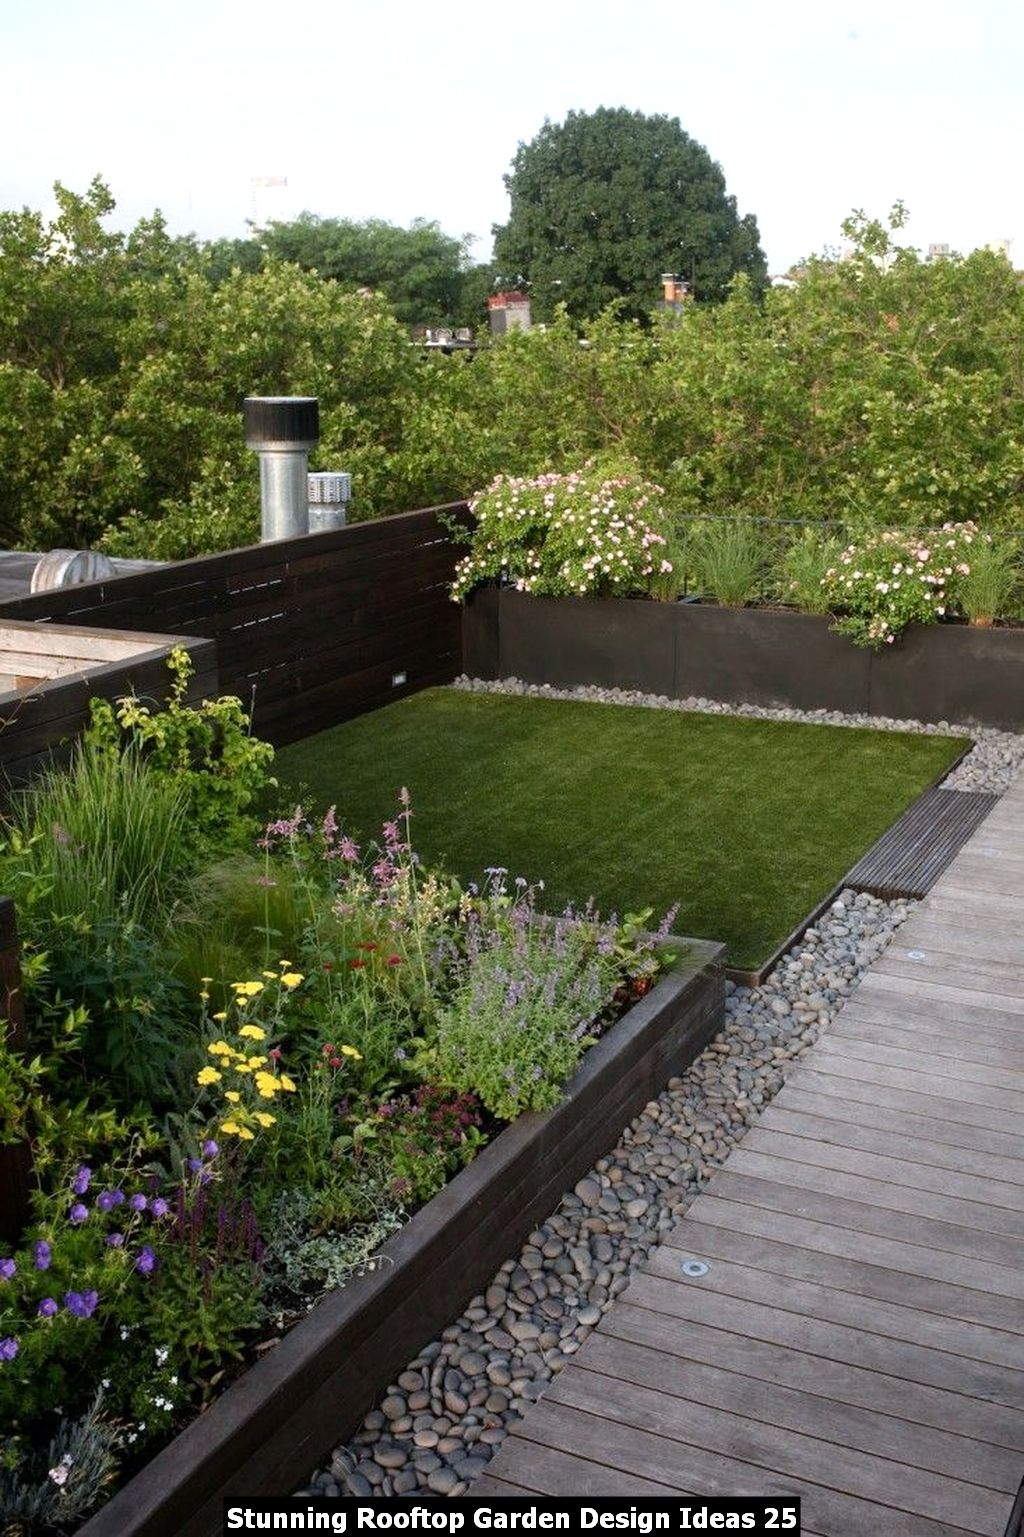 Stunning Rooftop Garden Design Ideas 25